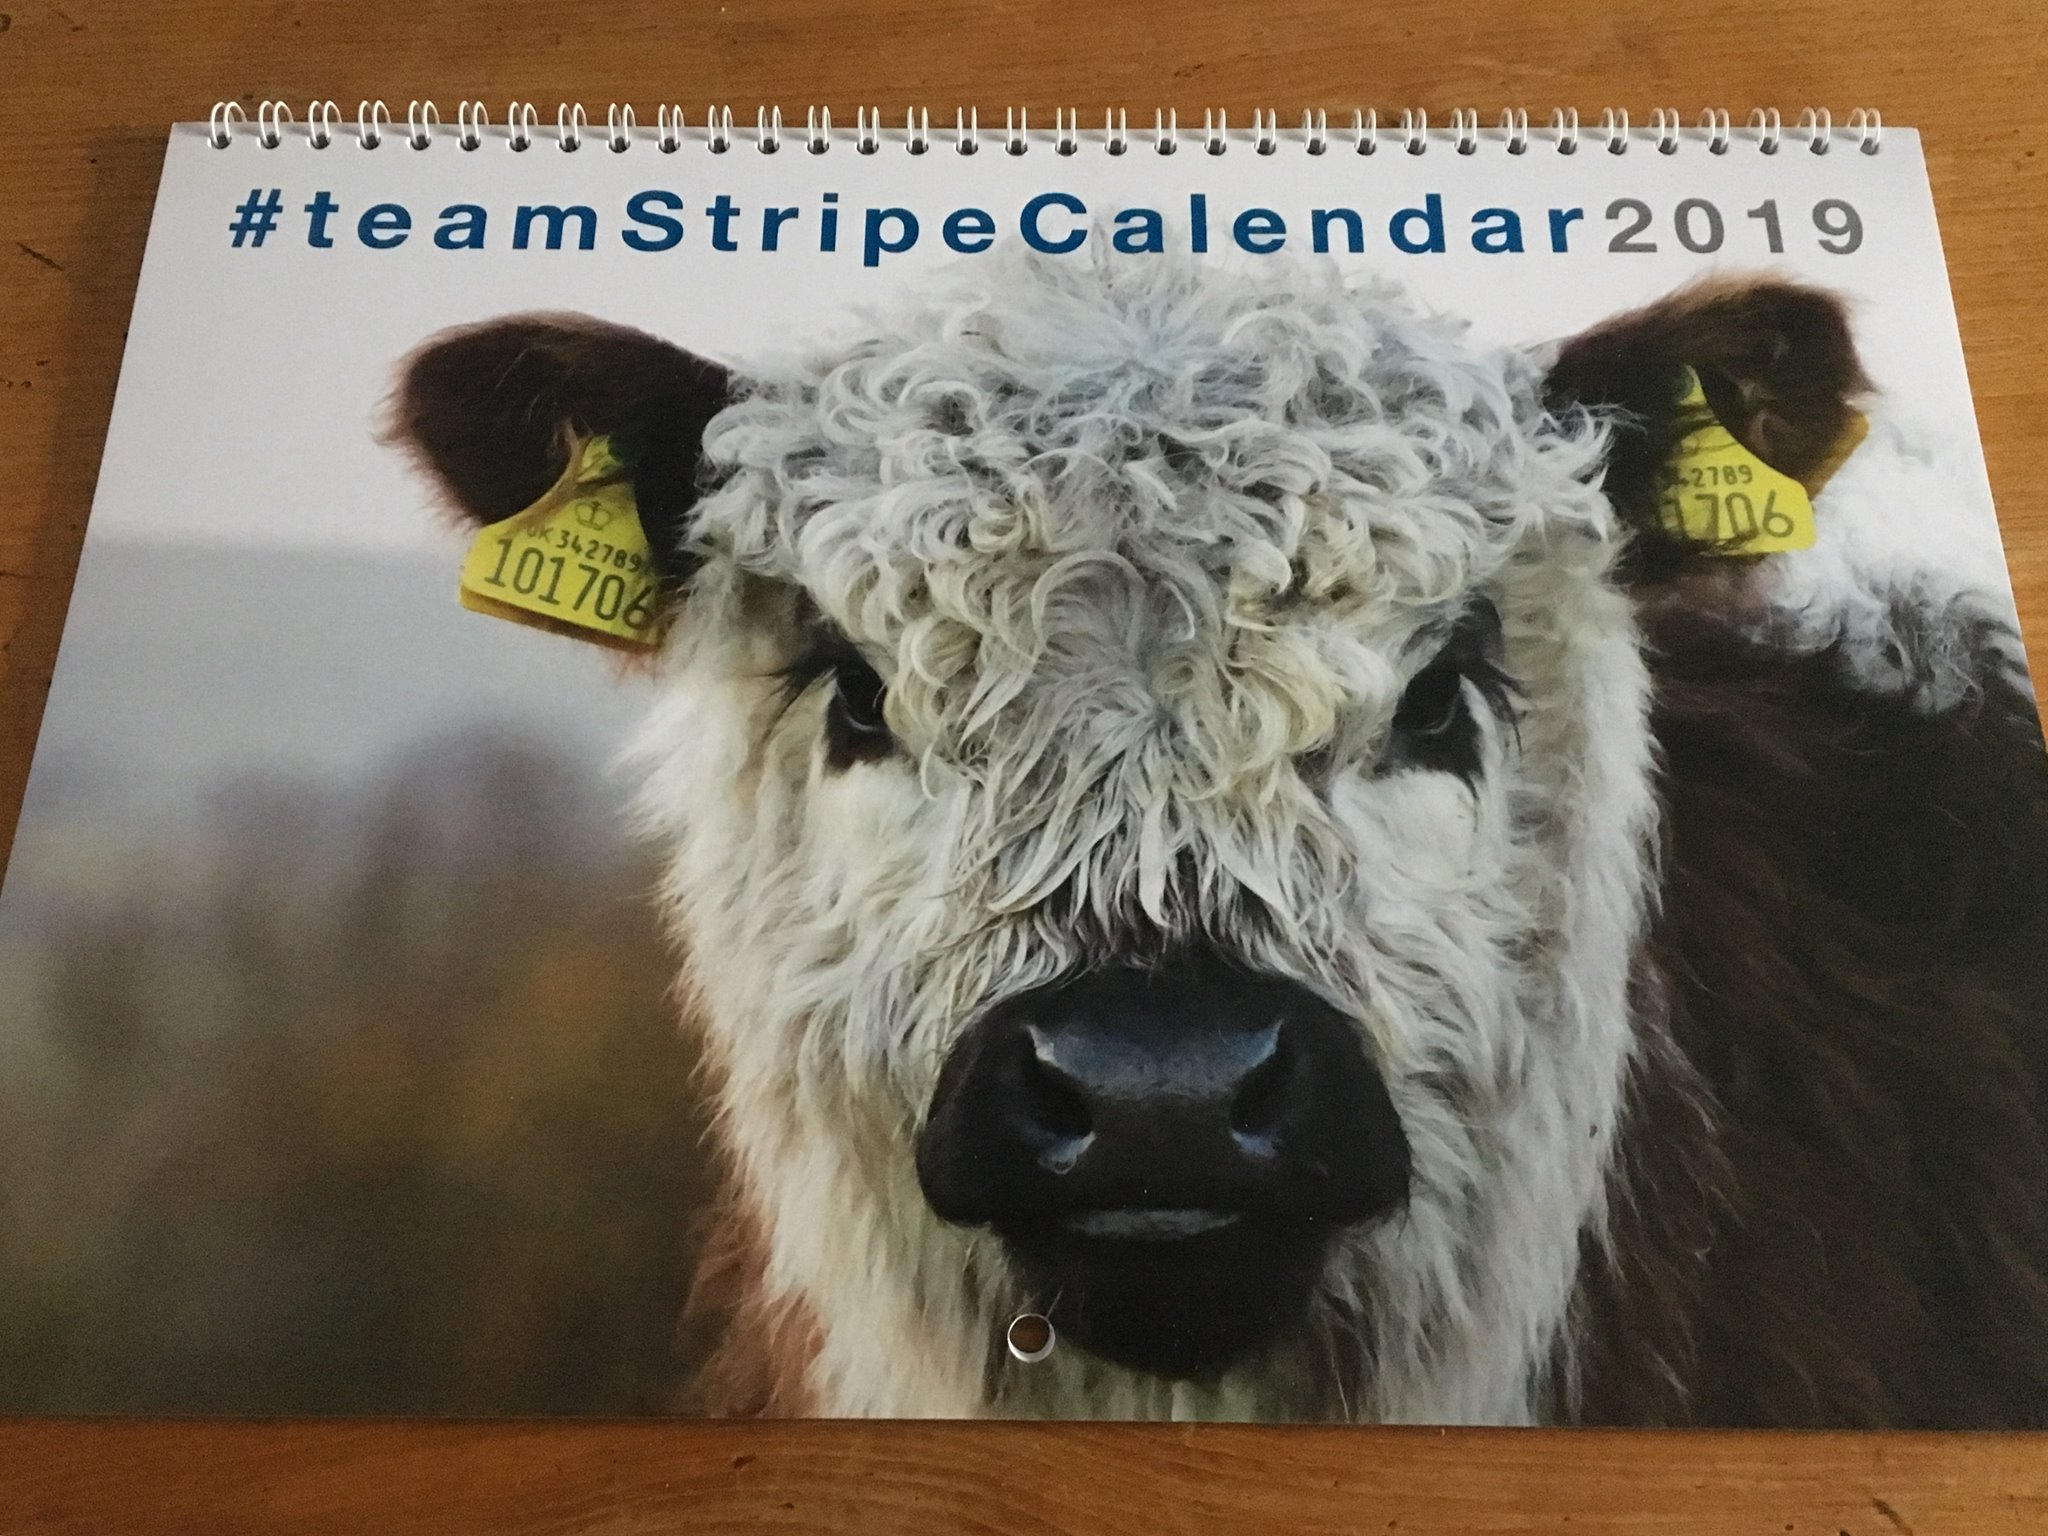 - James Taylor produces a #teamStripe Calendar every year to raise money for children's hospice South West and #StayStrongStu which includes many photos of the Howen Riggits.UK £10 EU £13 Rest of World £15to order, email: teamstripecalendar@gmail.com